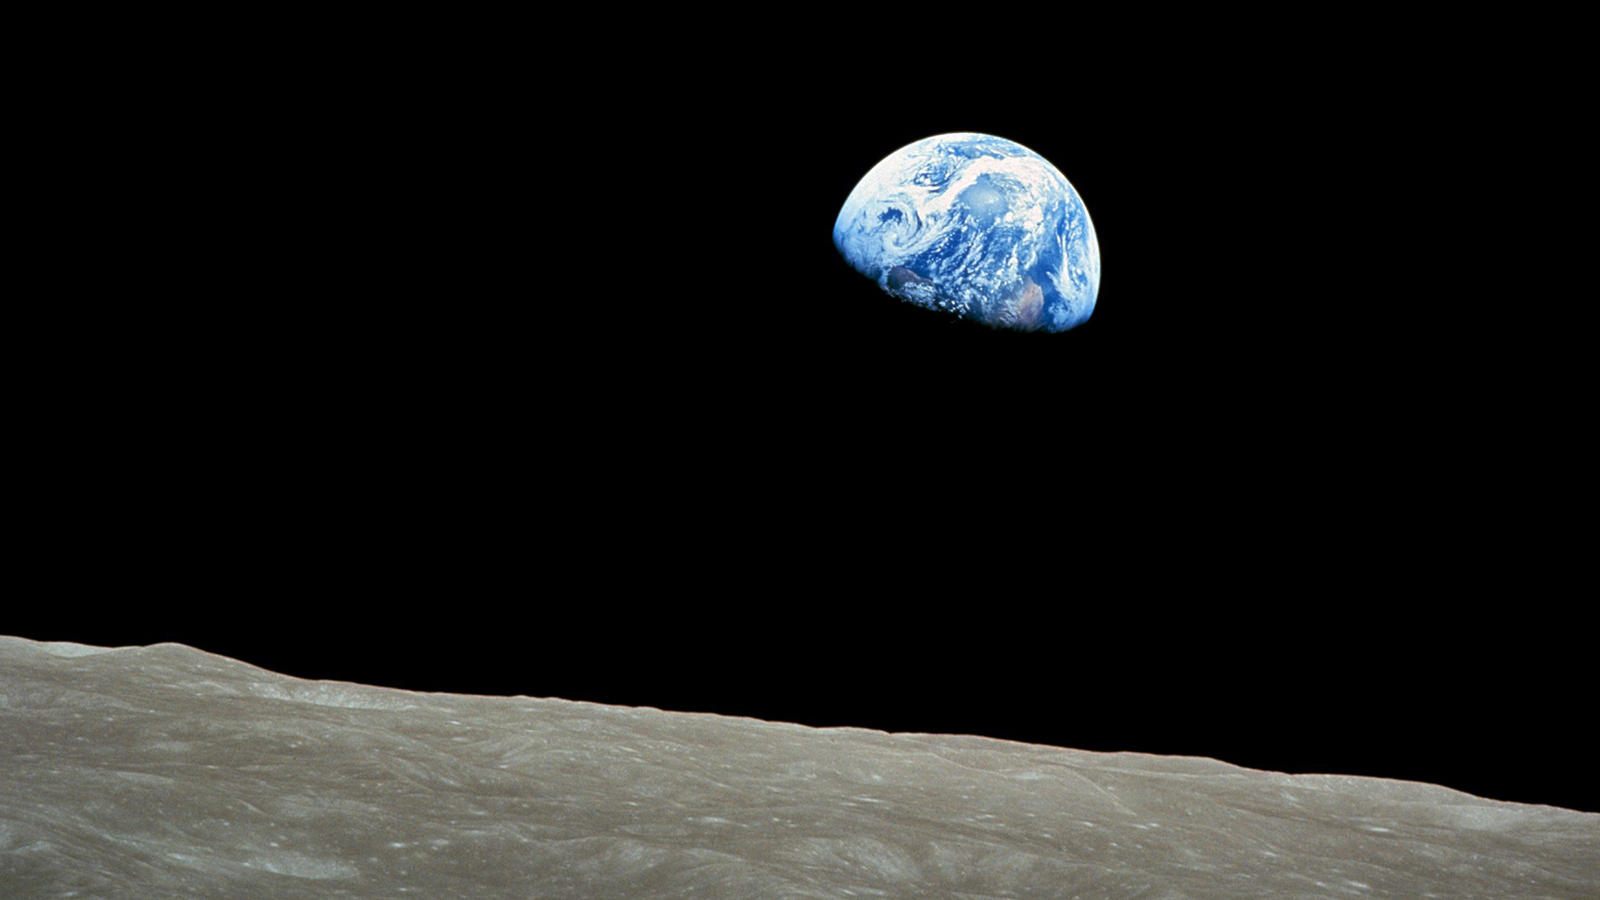 """""""Earthrise"""" is a photograph of the Earth and parts of the moon's surface taken from lunar orbit by astronaut Bill Anders in 1968, during the Apollo 8 mission. Photo by Bill Anders/NASA/Creative Commons"""